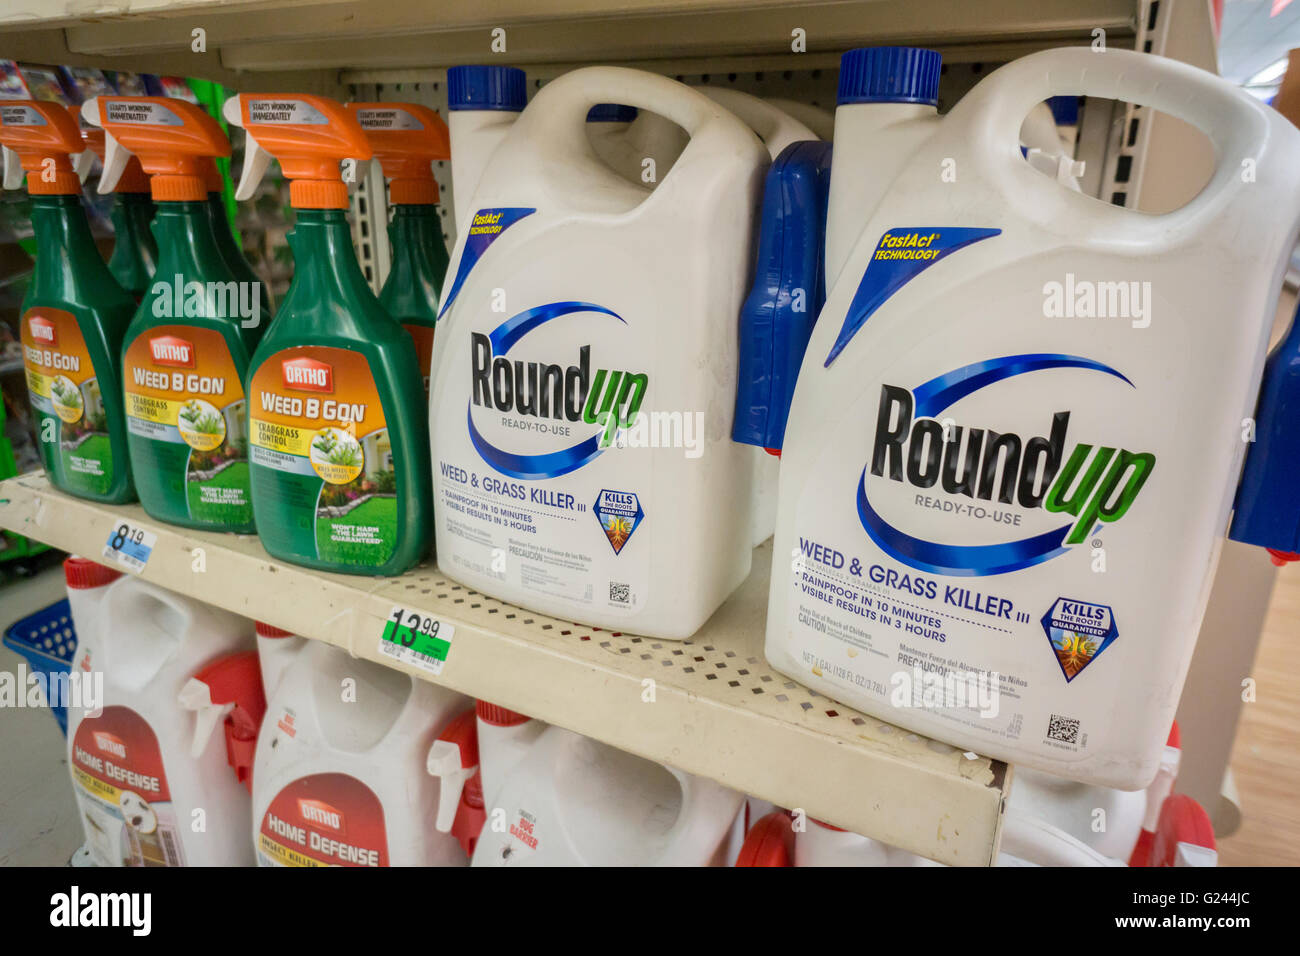 Delightful Containers Of Monsanto Roundup Weed Killer On A Garden Supply Store Shelf  In New York On Monday, May 23, 2016. Bayer AG, The German Pharmaceutical  And ...